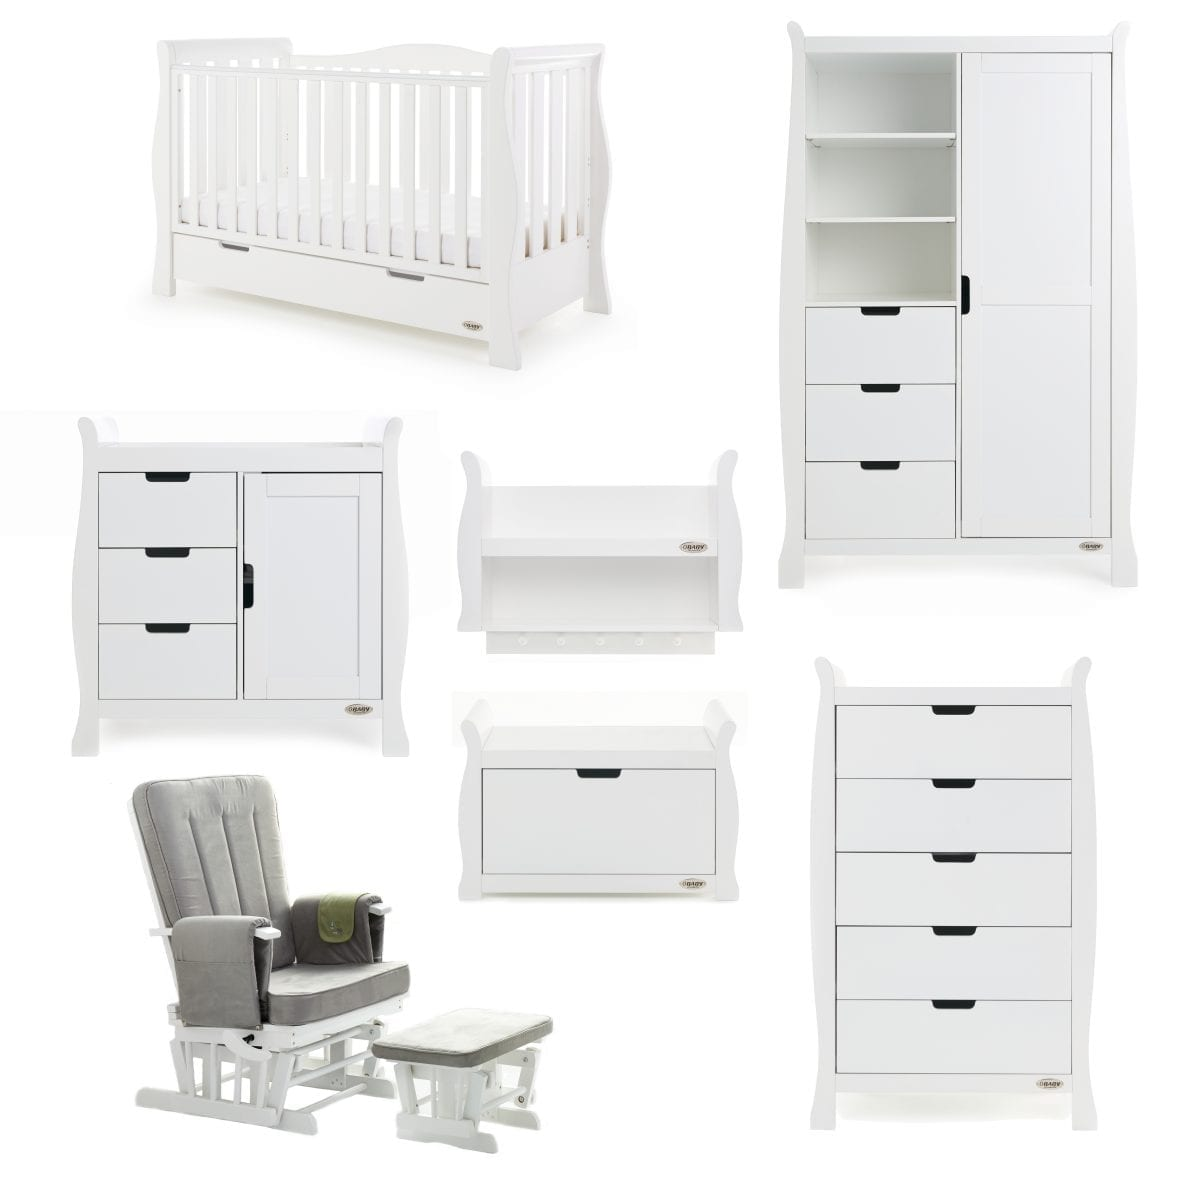 Stamford Luxe 7 Piece Room Set - White